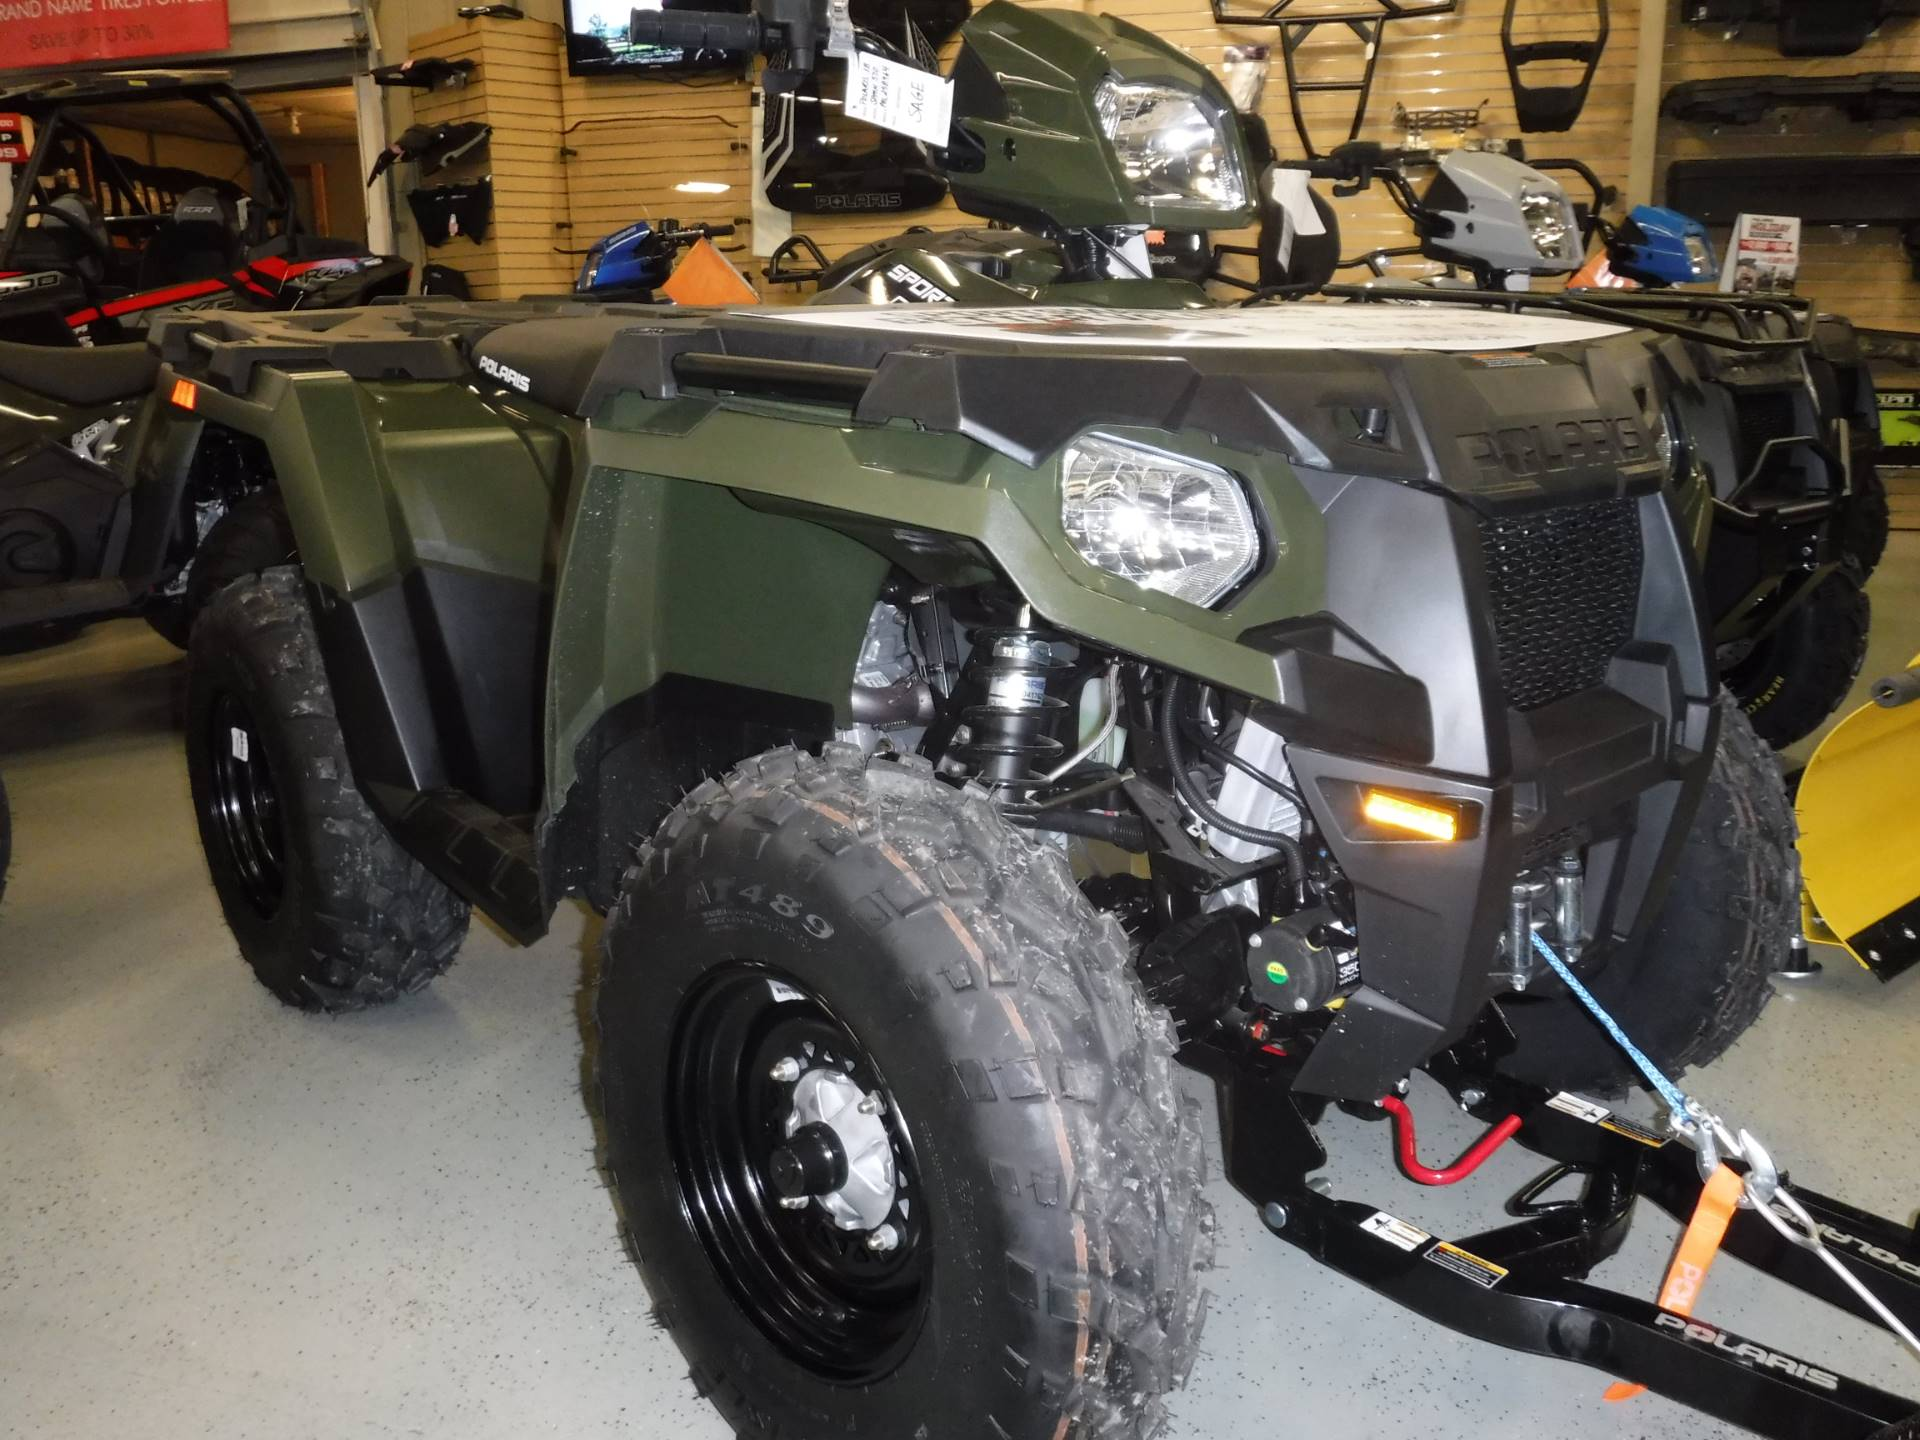 2018 Polaris Sportsman 570 5